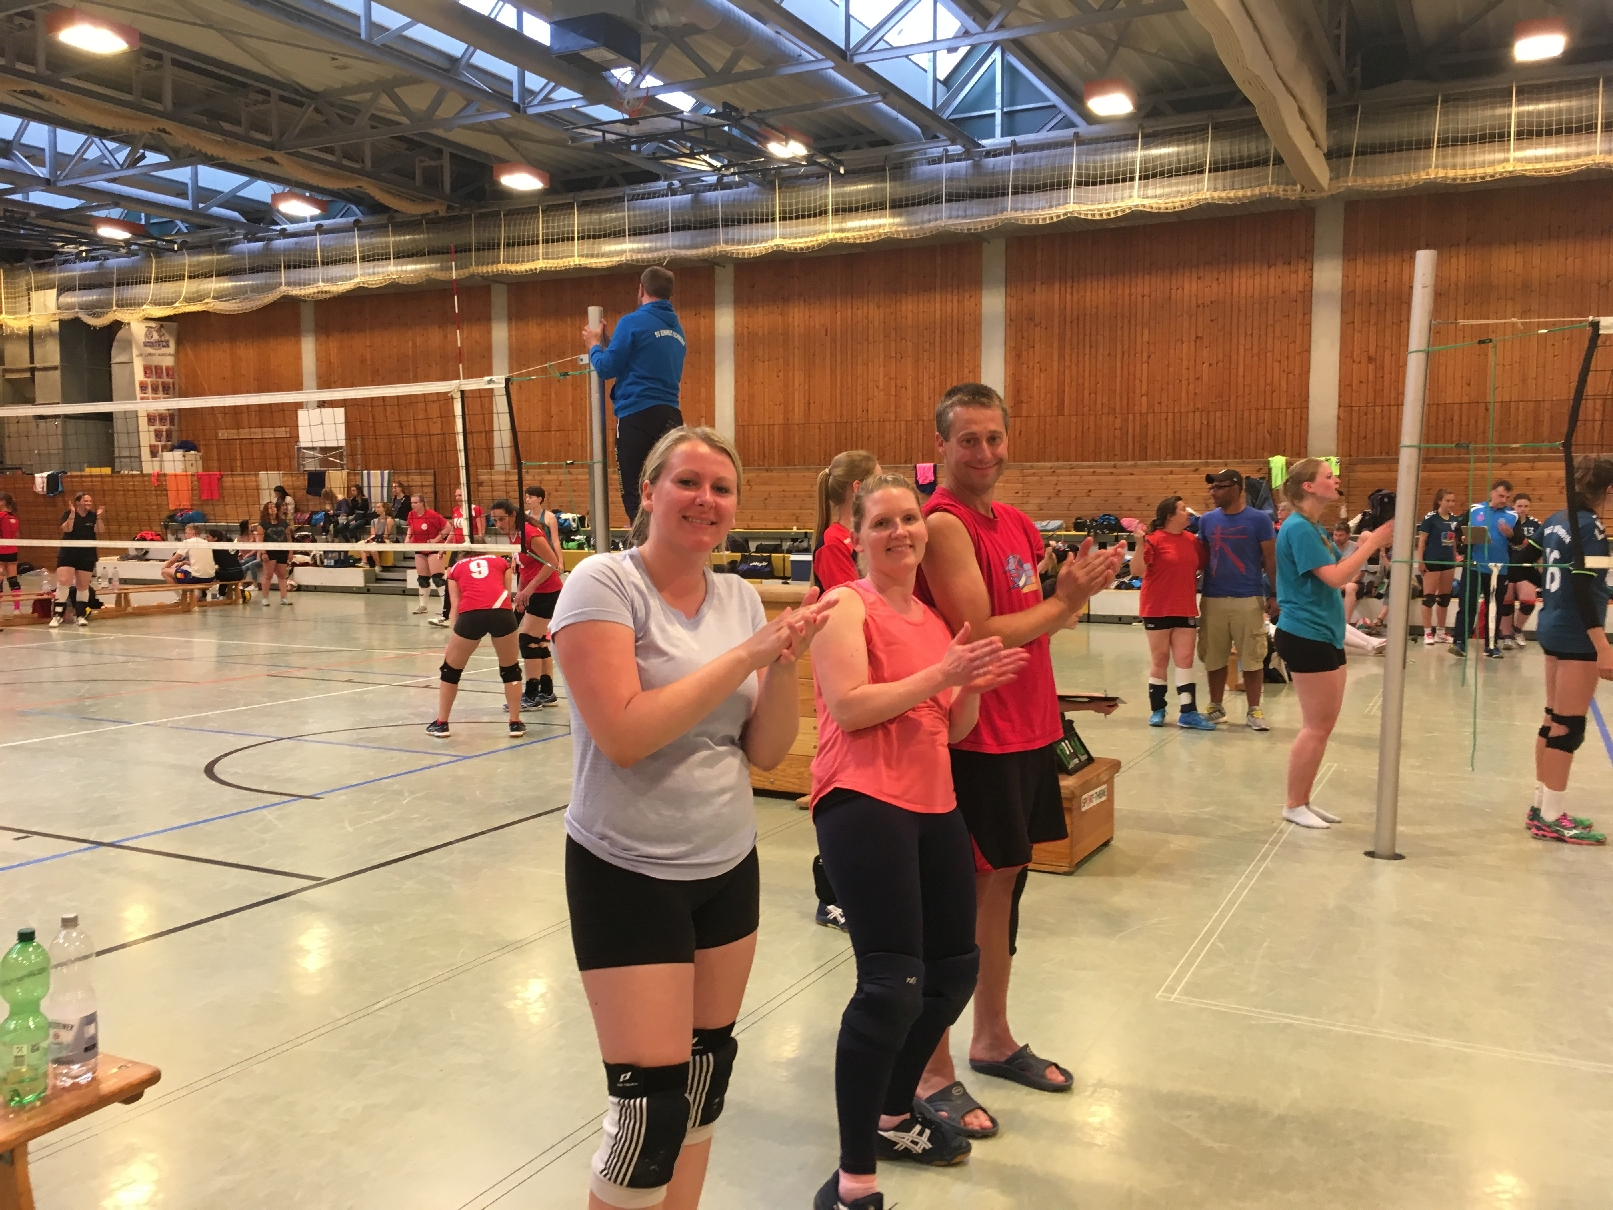 20180526 9 Damenvolleyballturnier Bild16